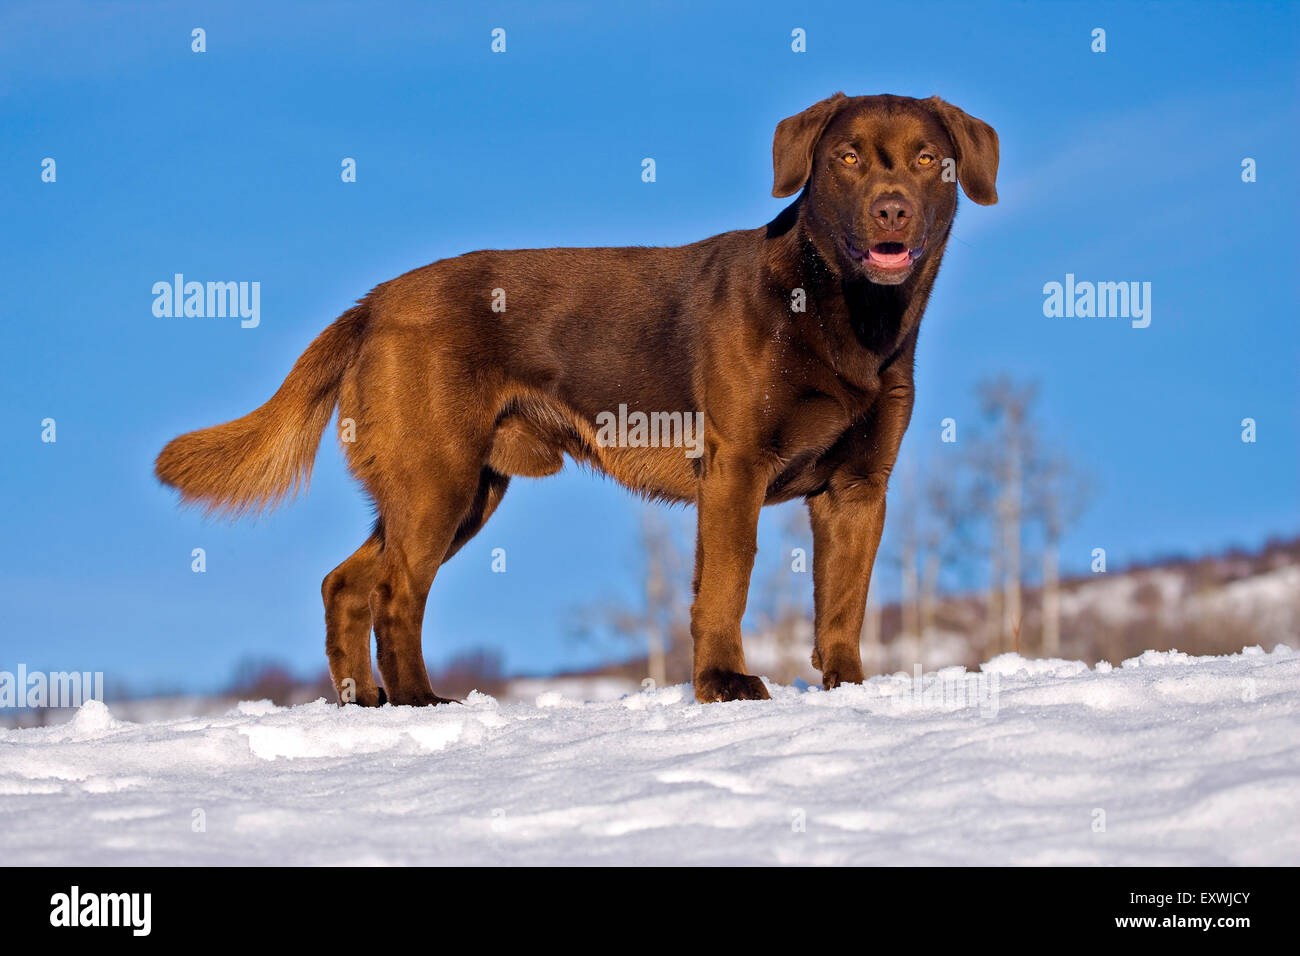 Playful Labrador Retriever standing in snow in meadow - Stock Image